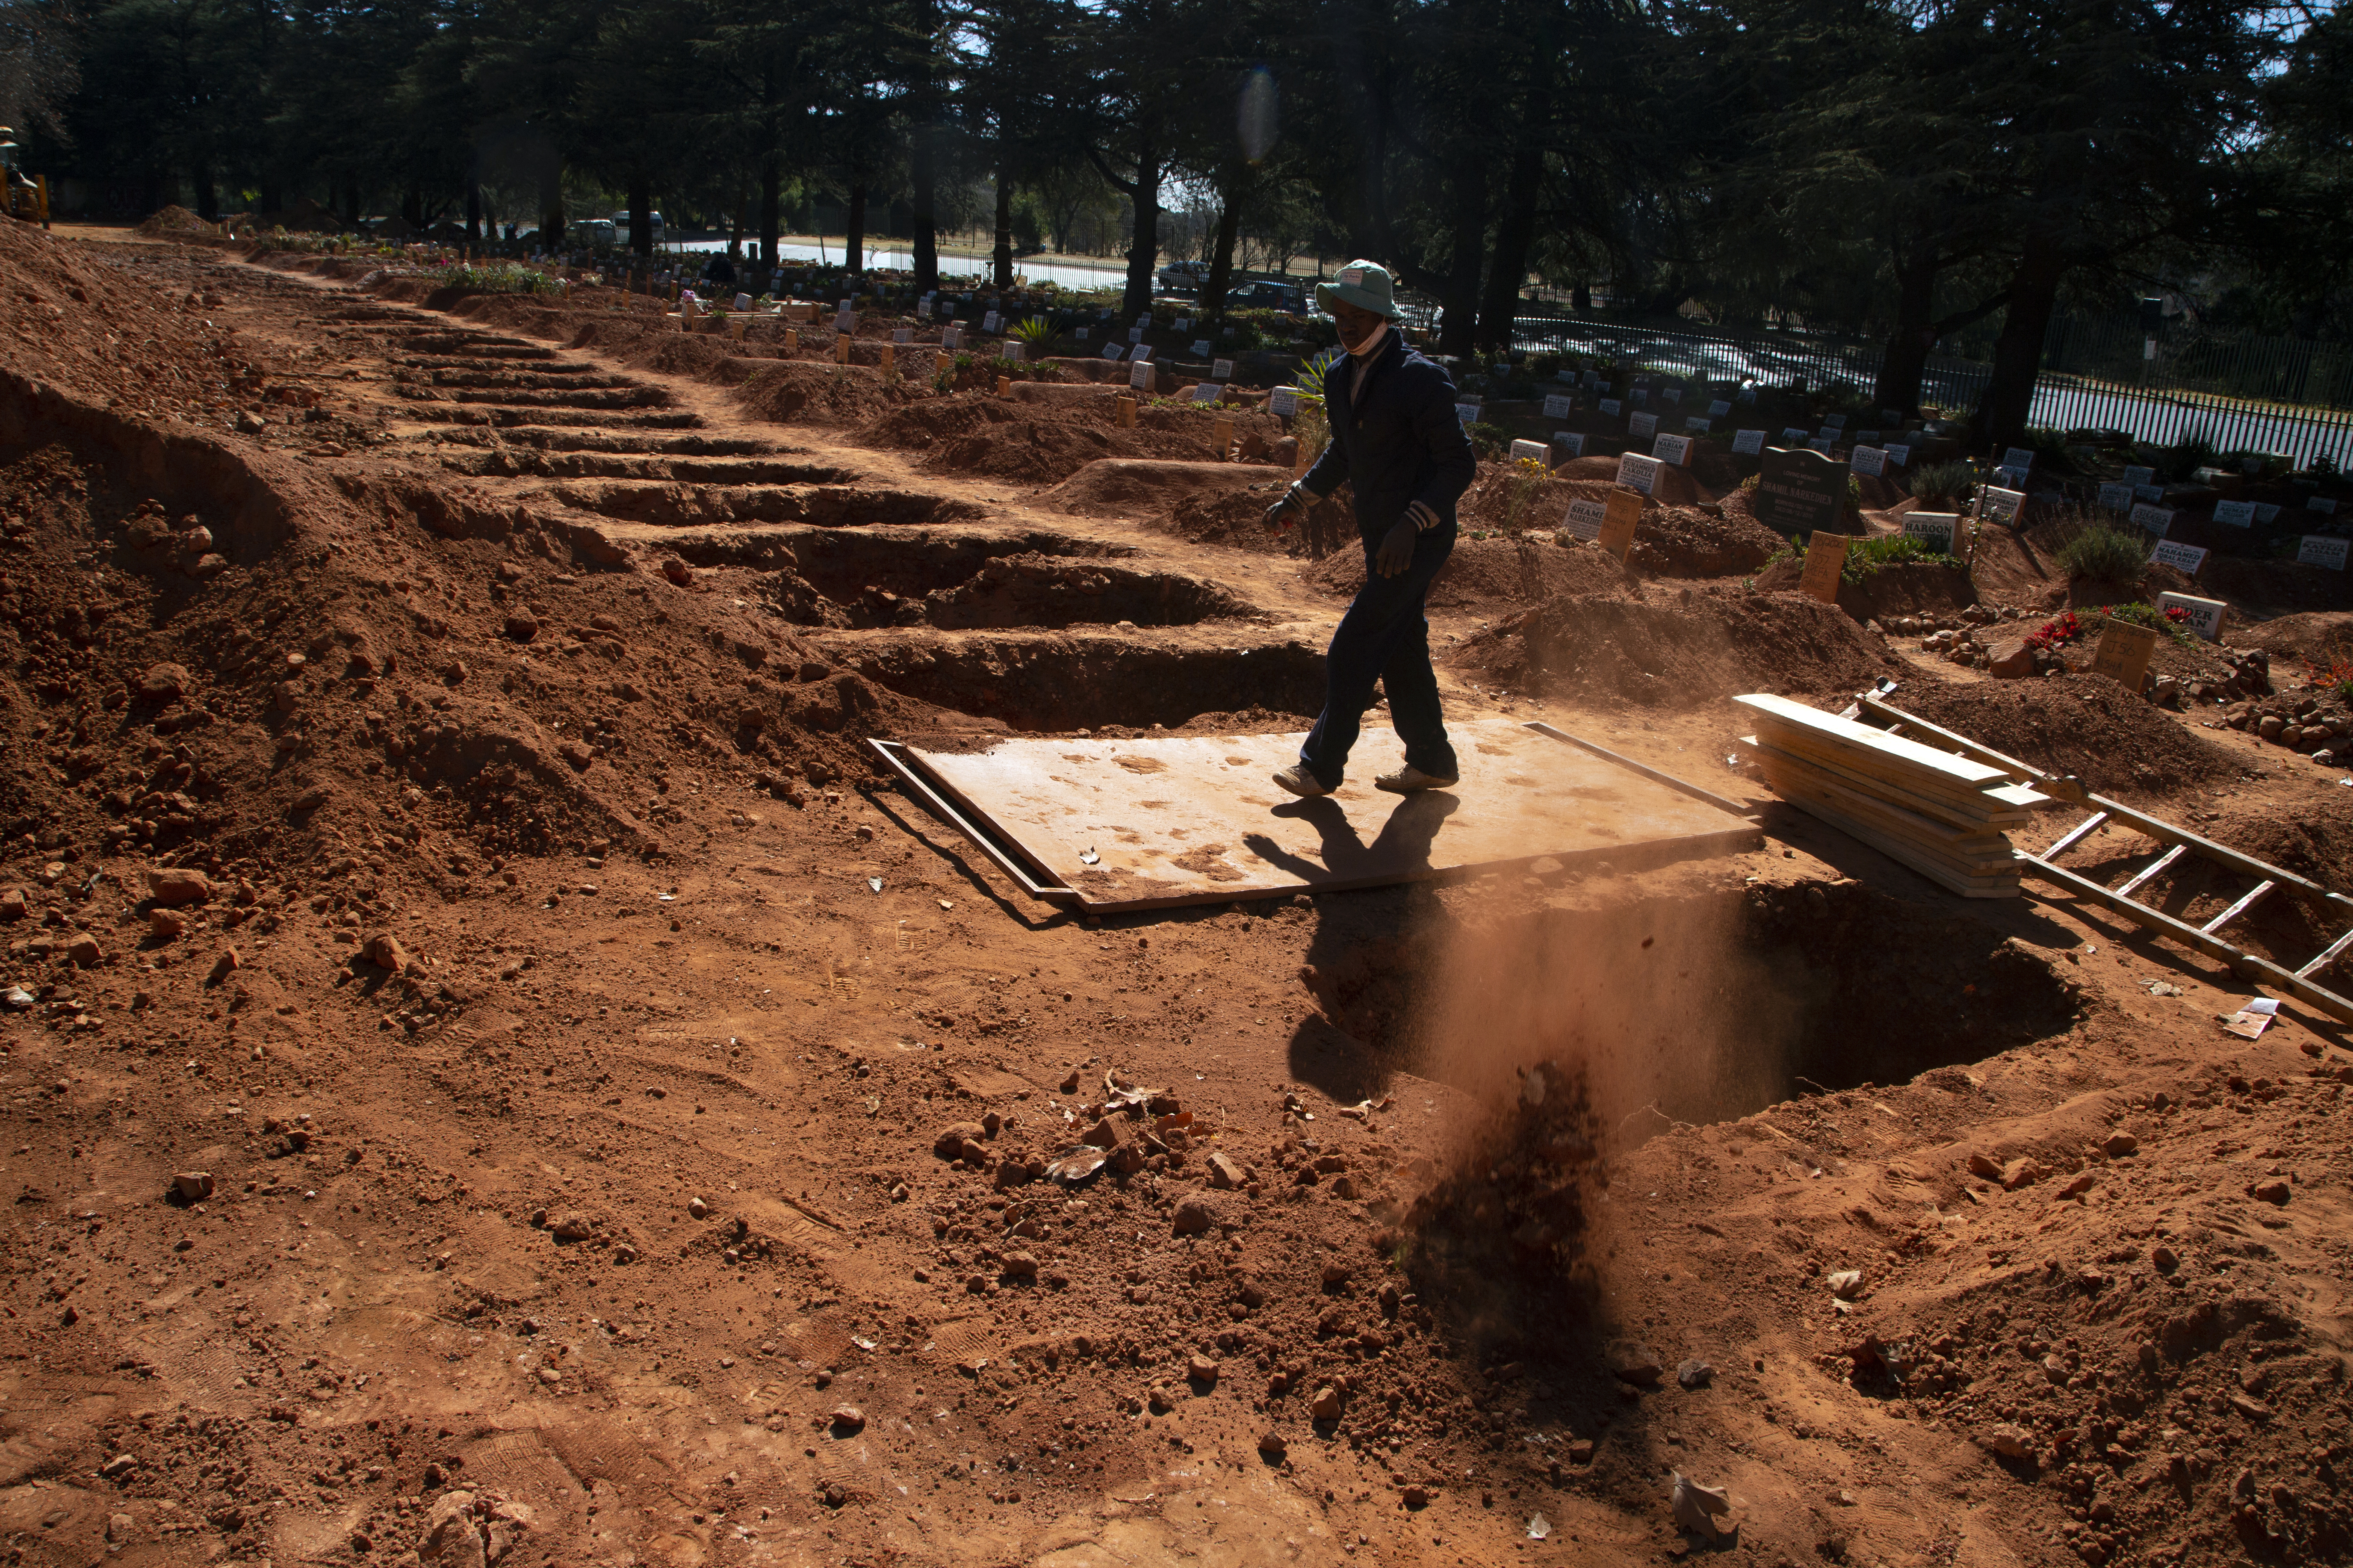 A grave is prepared for a Muslim burial at Johannesburg's main Westpark Cemetery, July 14, 2020.